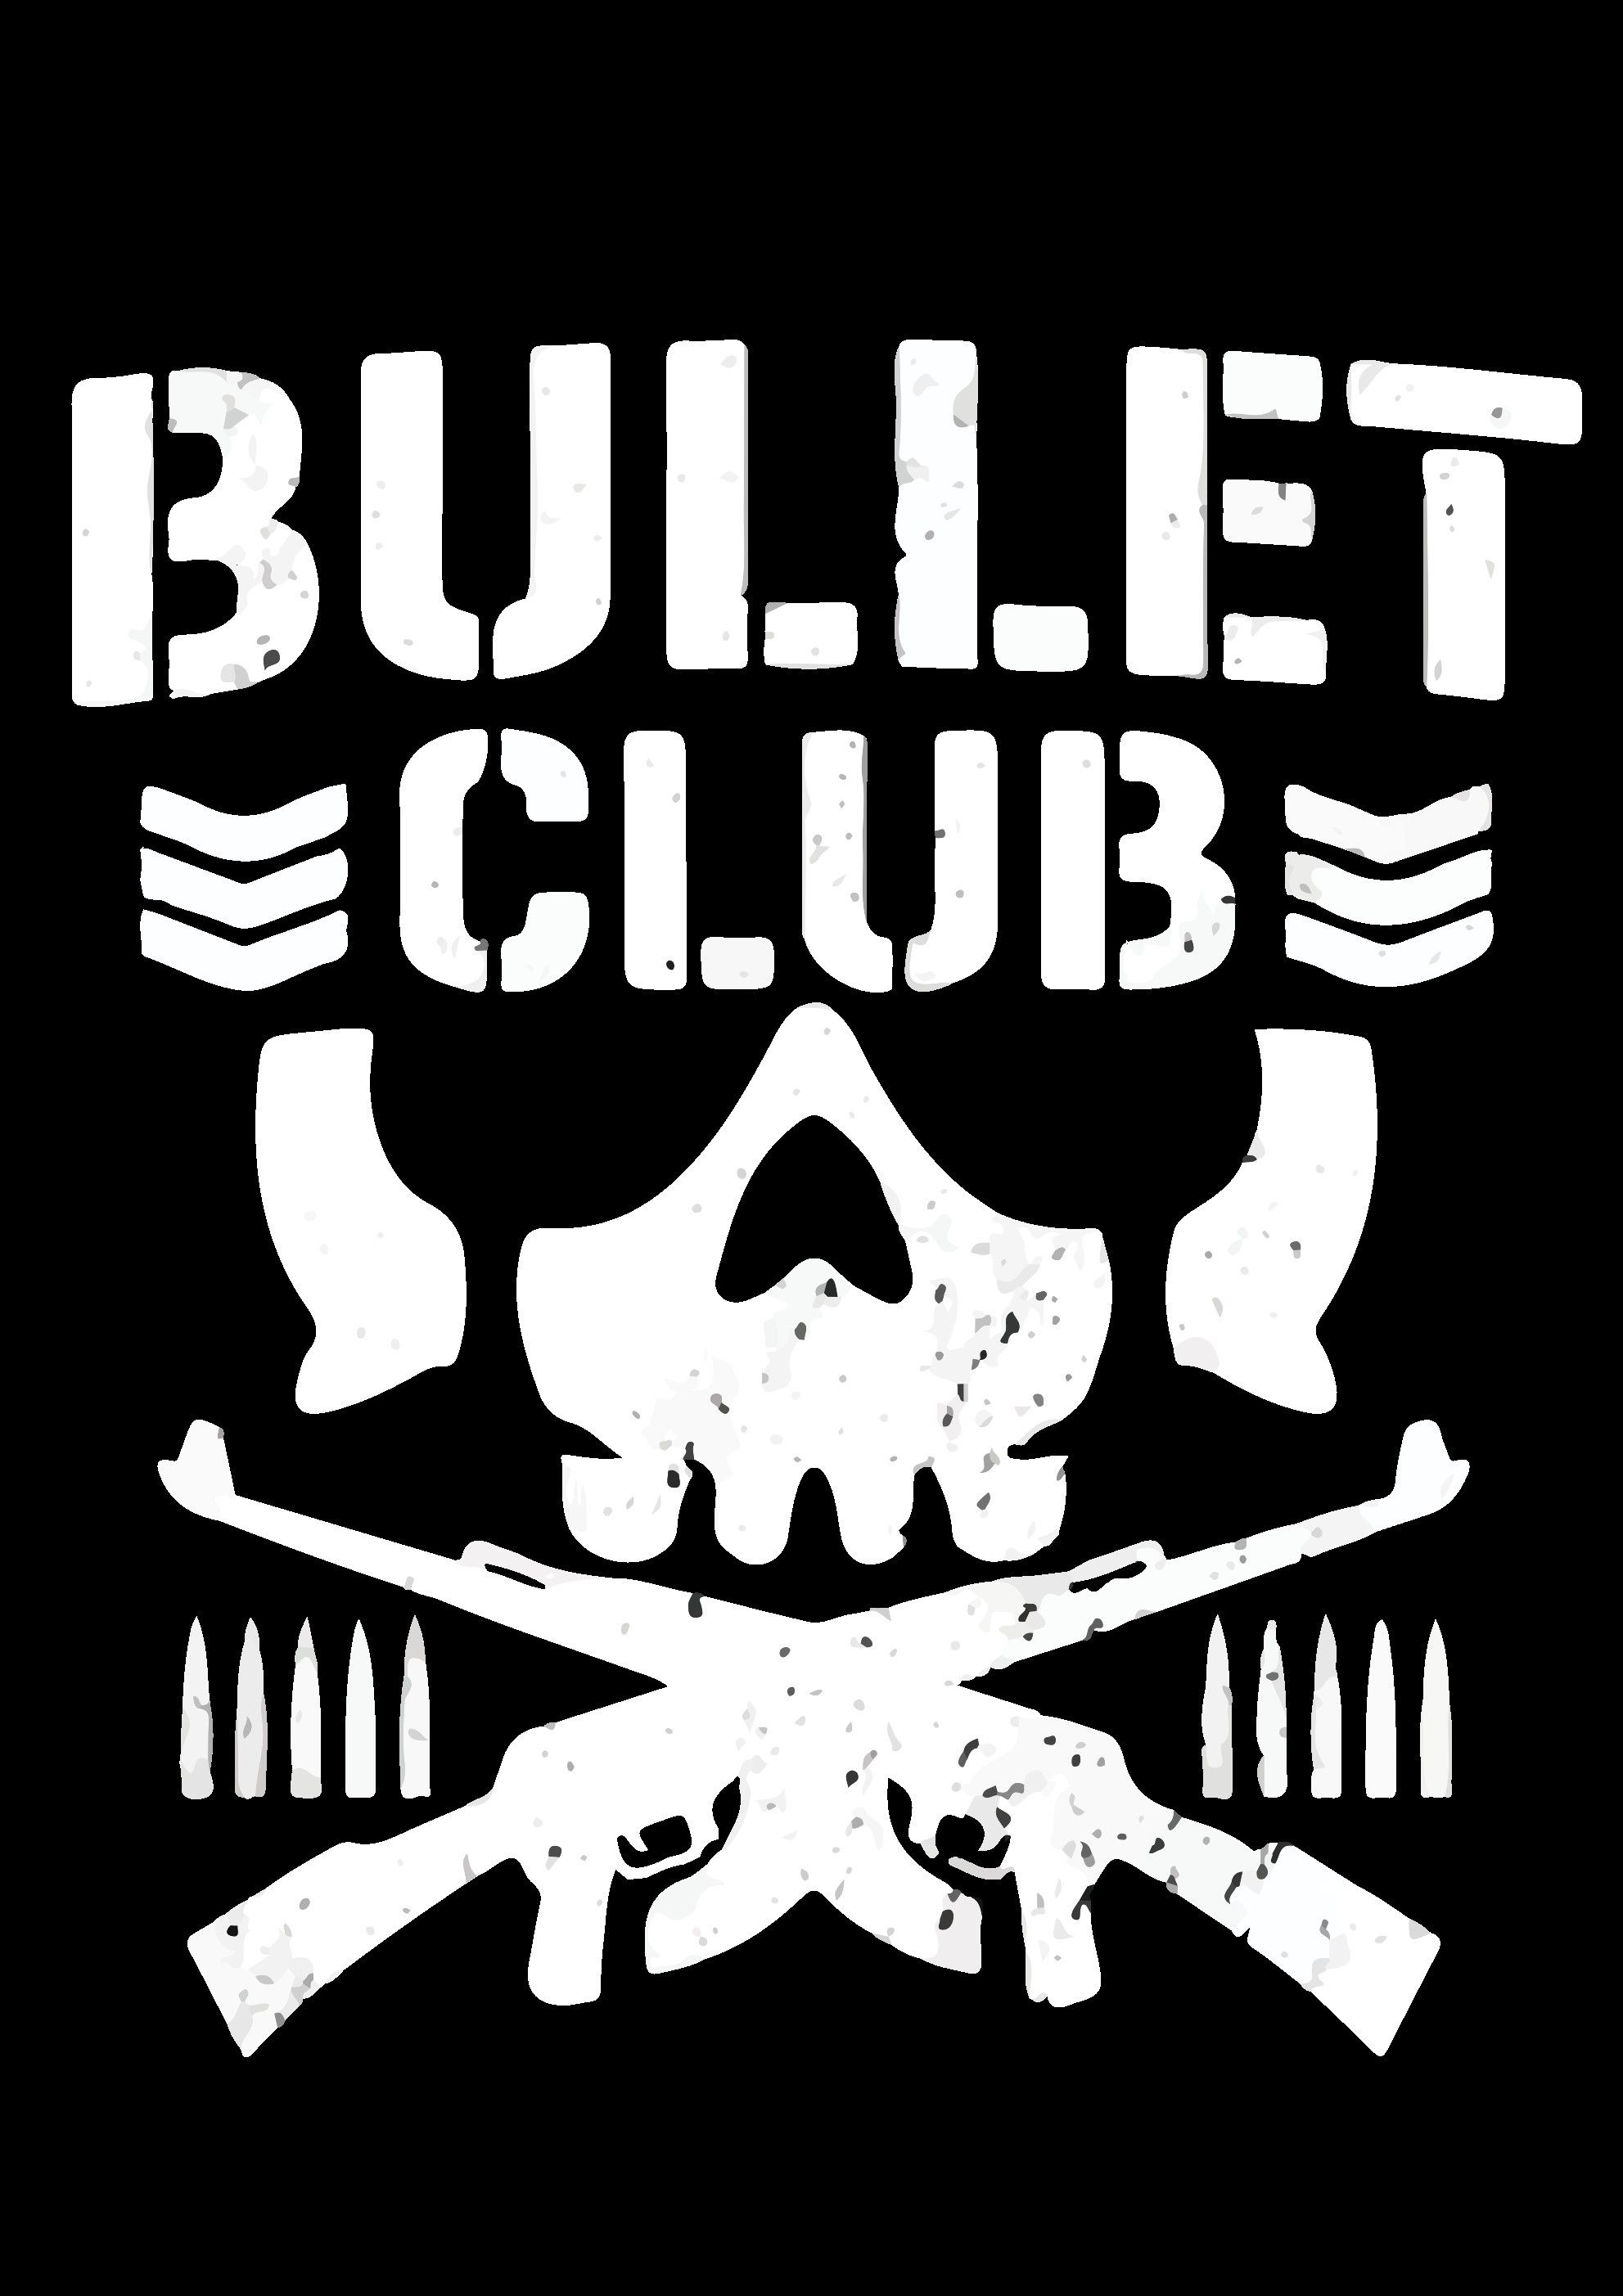 71 Bullet Club Wallpapers On Wallpaperplay Bullet Club Logo Wrestling Posters Liverpool Wallpapers